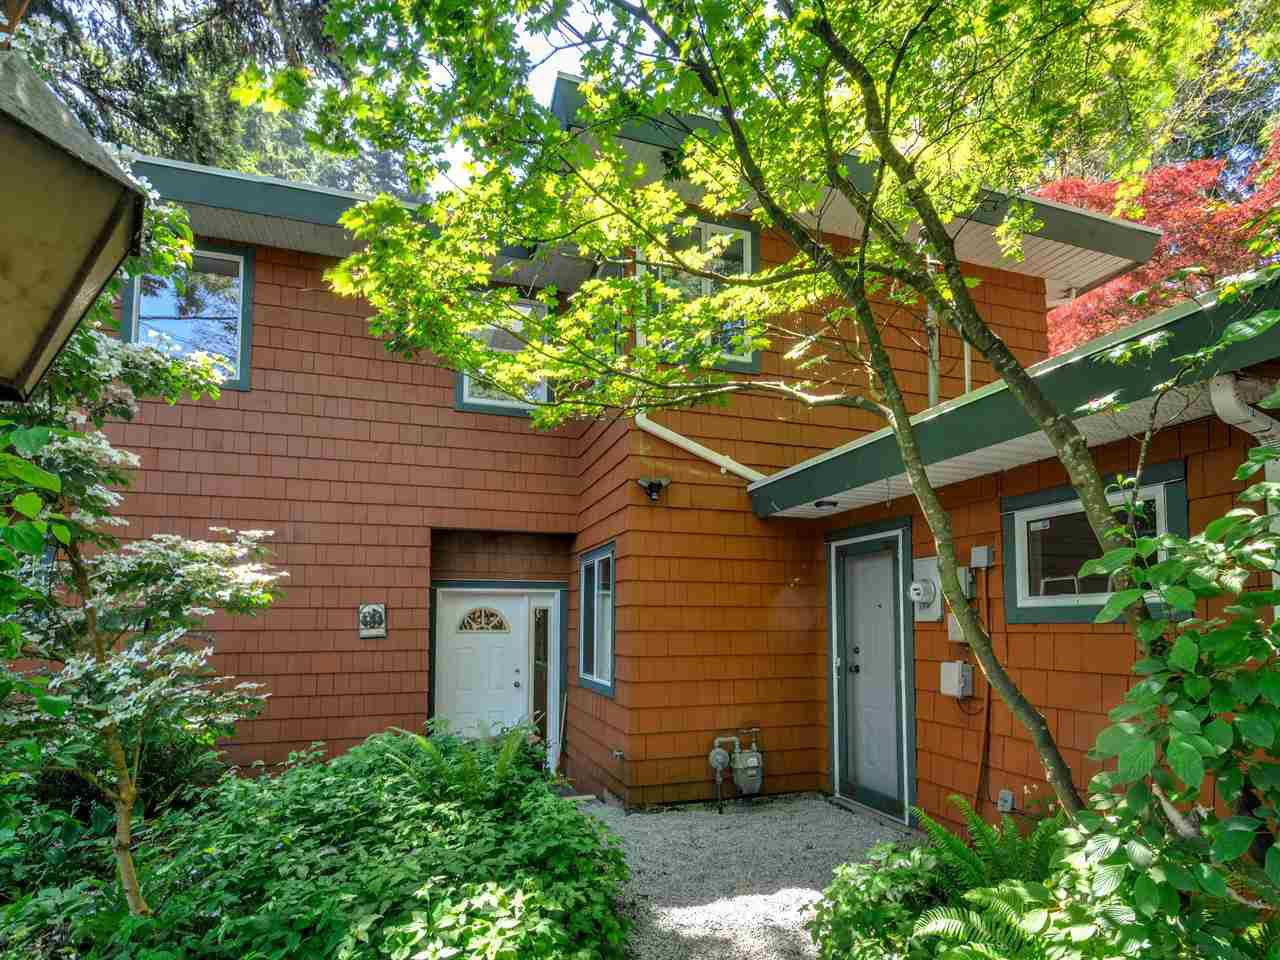 Over 15,000 sqft lot (1/3acre) completely hidden from the road with potential to subdivide. A very special and unique property in Sunny White Rock that must be seen to appreciate